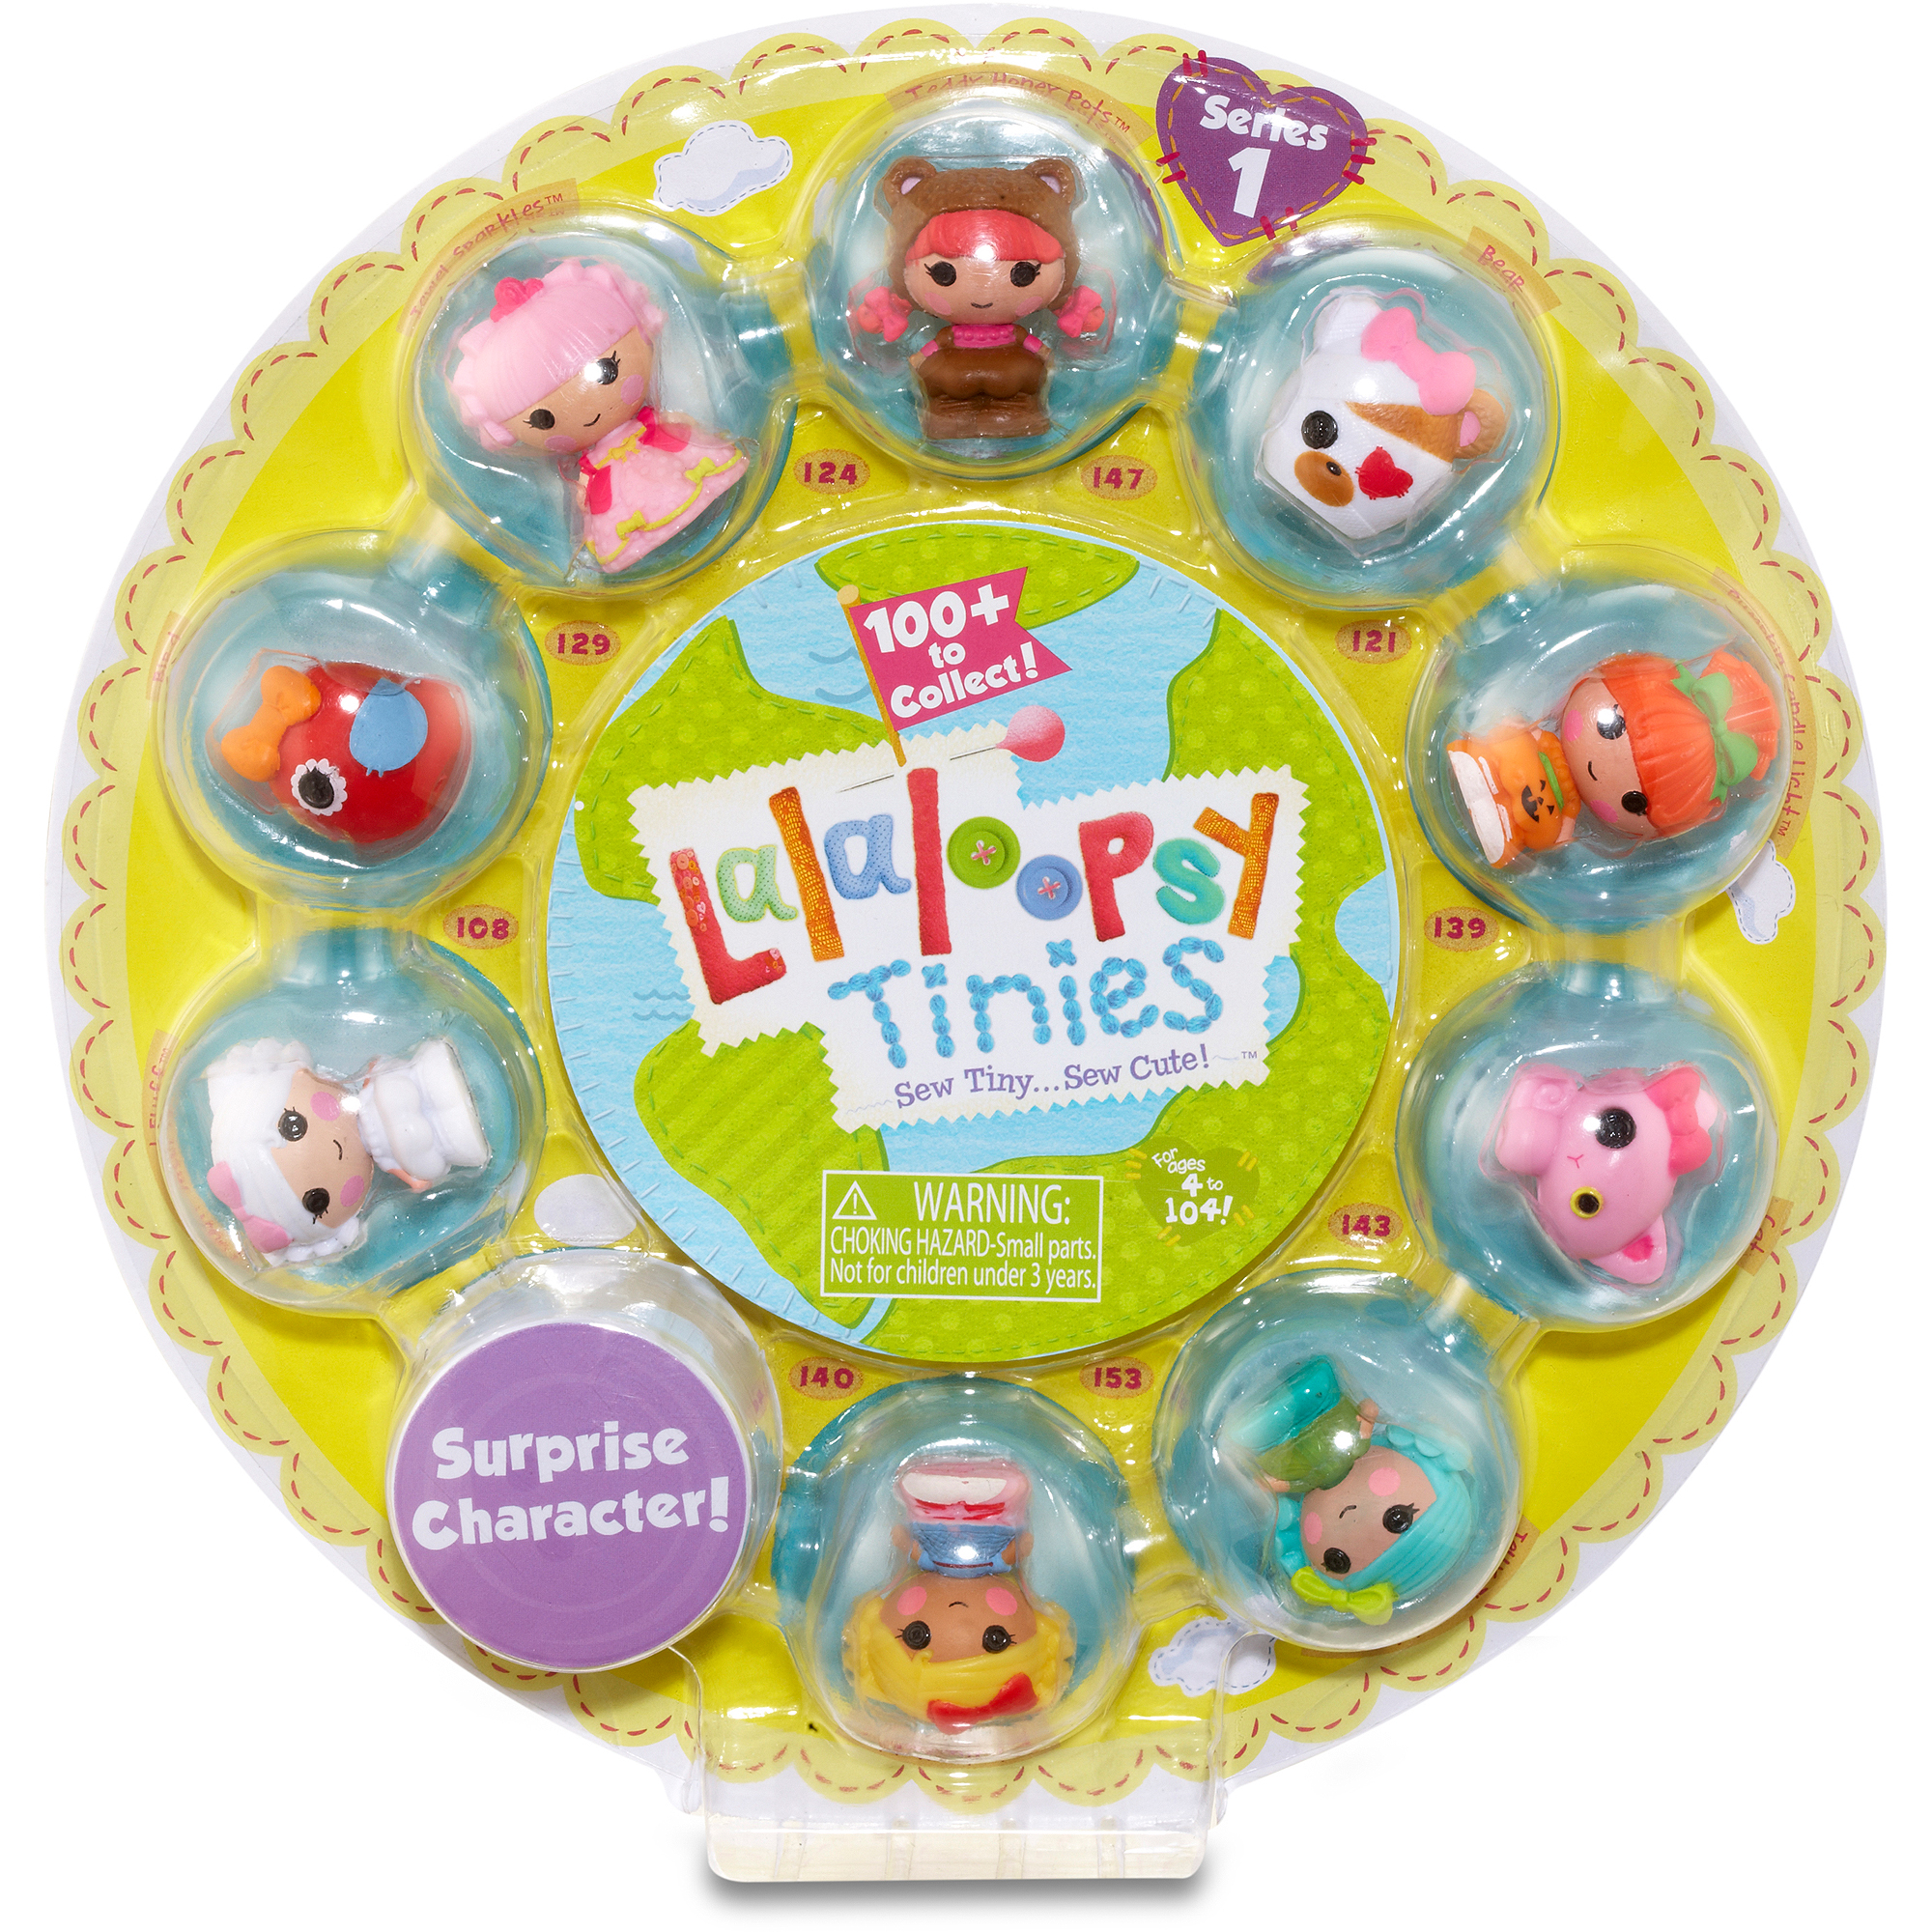 Lalaloopsy Tinies 10-Pack, Style 2